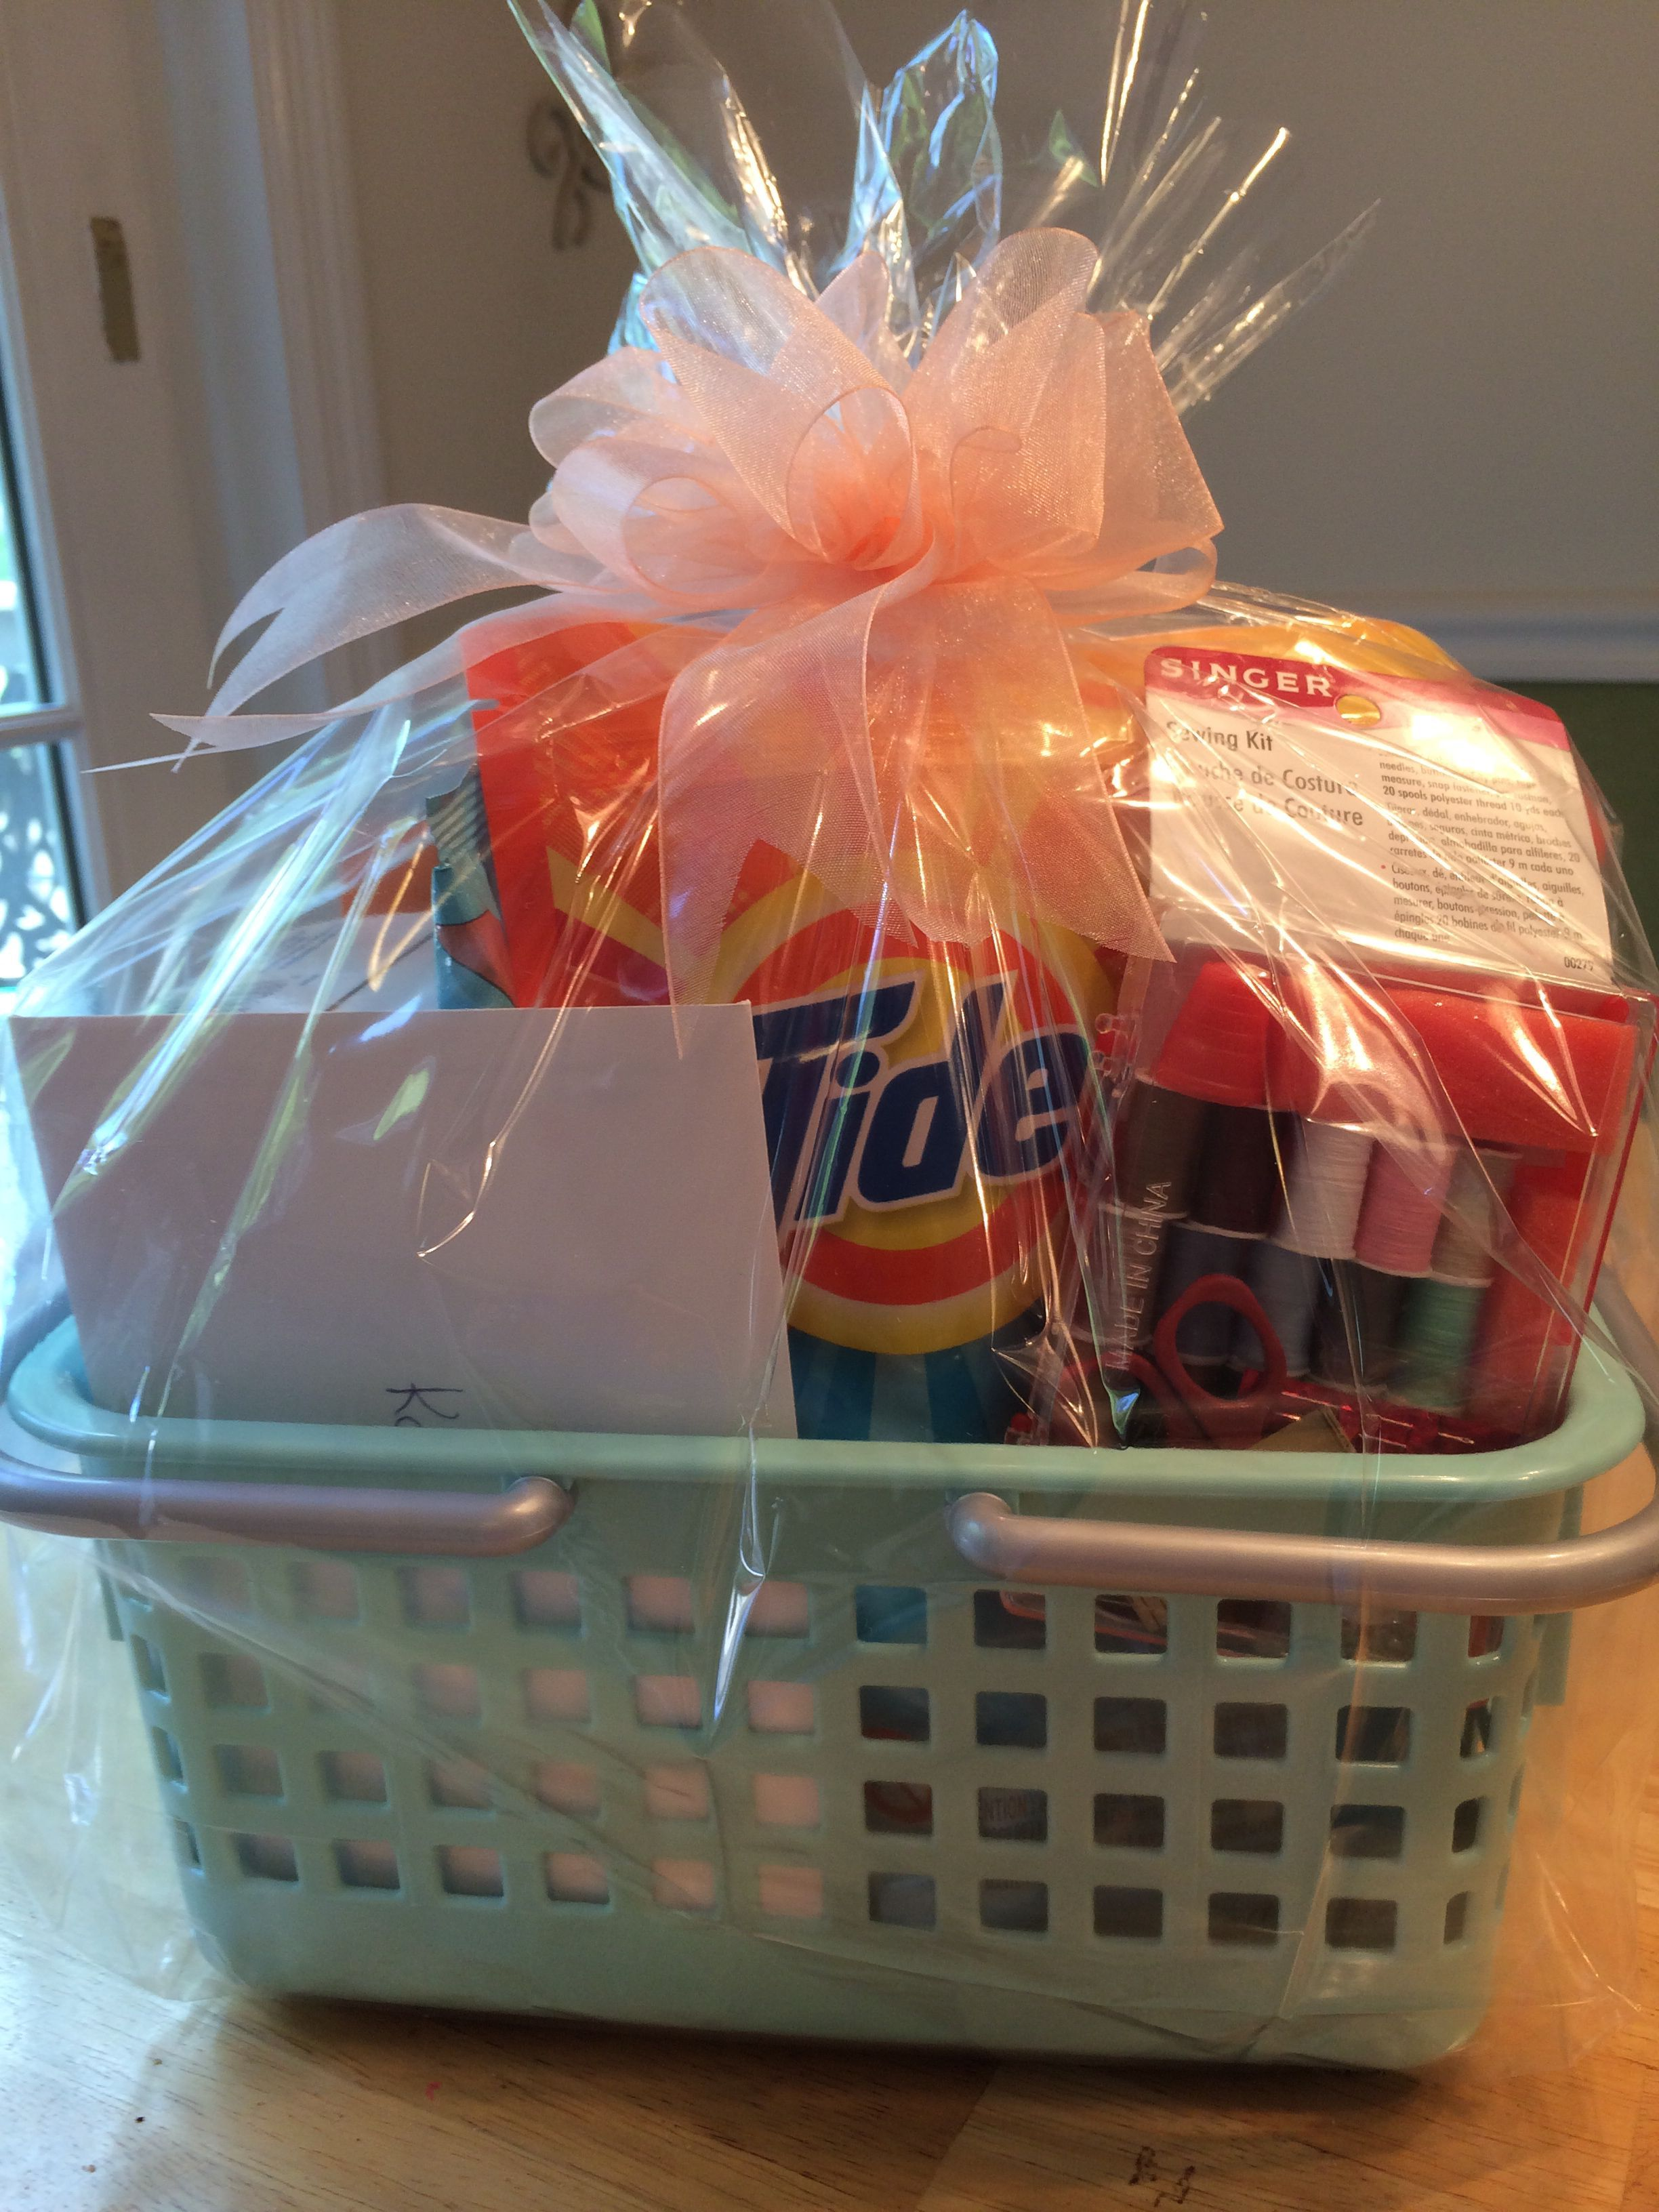 Going off to college gift. Just a few items and a cute, colorful container. Laundry items included in this basket are: Tide laundry detergent pods (perfect size for college students), dryer sheets, stain remover, pop up hamper, delicates bag, disinfectant wipes, small sewing kit. You could also add a lint brush and air fresheners. #tidepodscontainercrafts Going off to college gift. Just a few items and a cute, colorful container. Laundry items included in this basket are: Tide laundry detergent #tidepodscontainercrafts